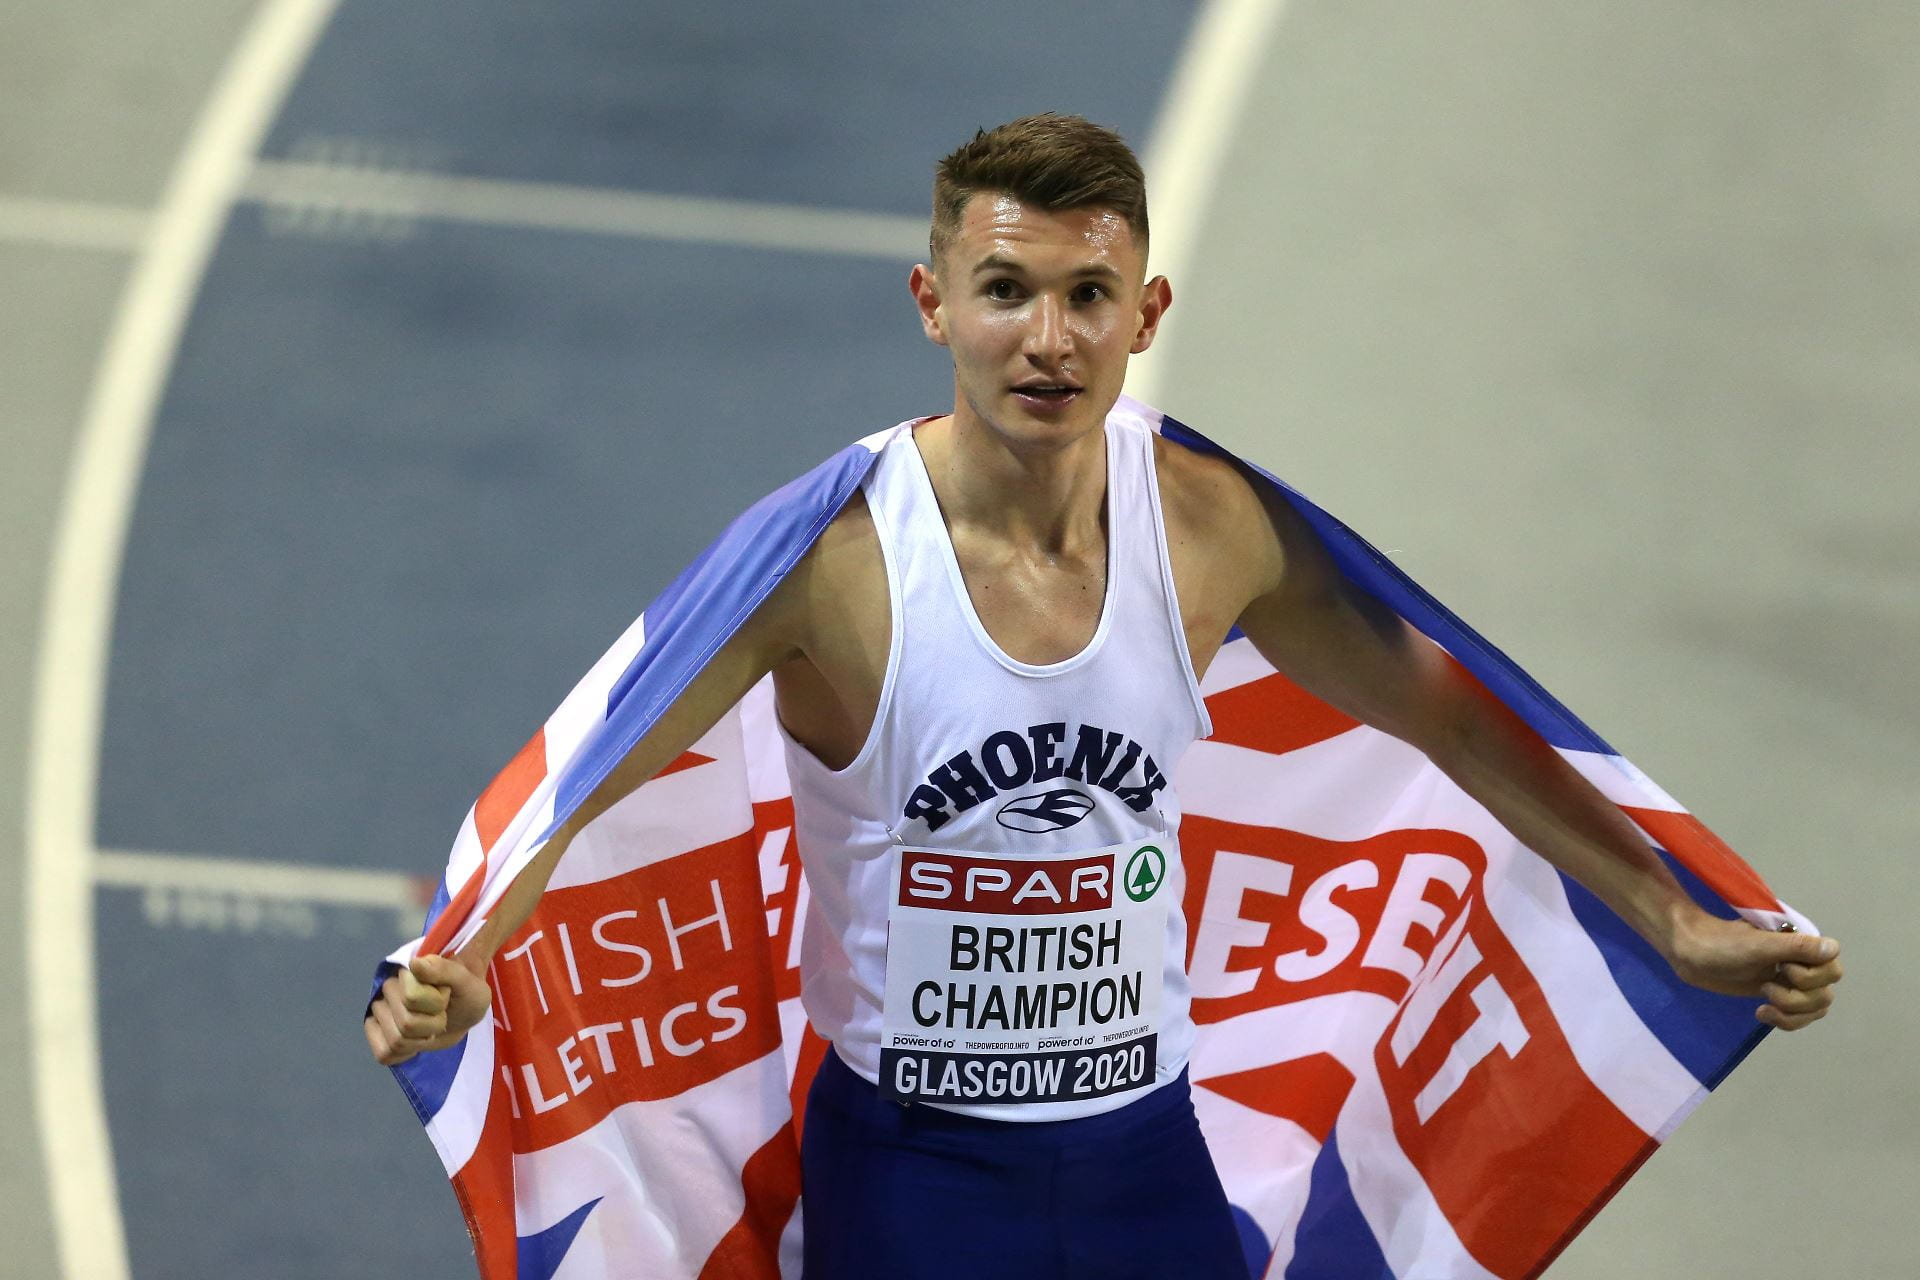 George with the Union Jack flag warapped around his shoulders